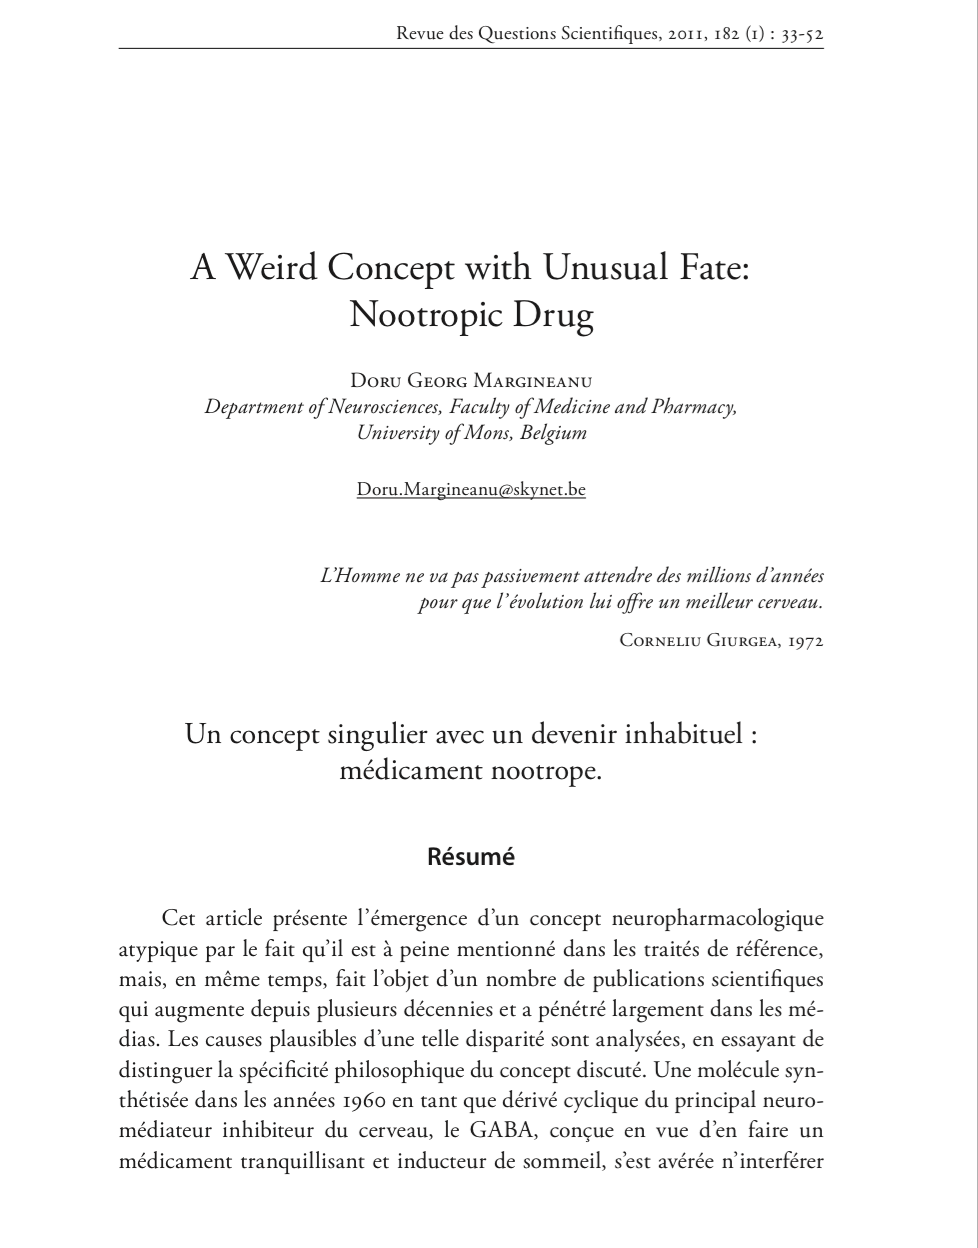 A Weird Concept with Unusual Fate: Nootropic Drug